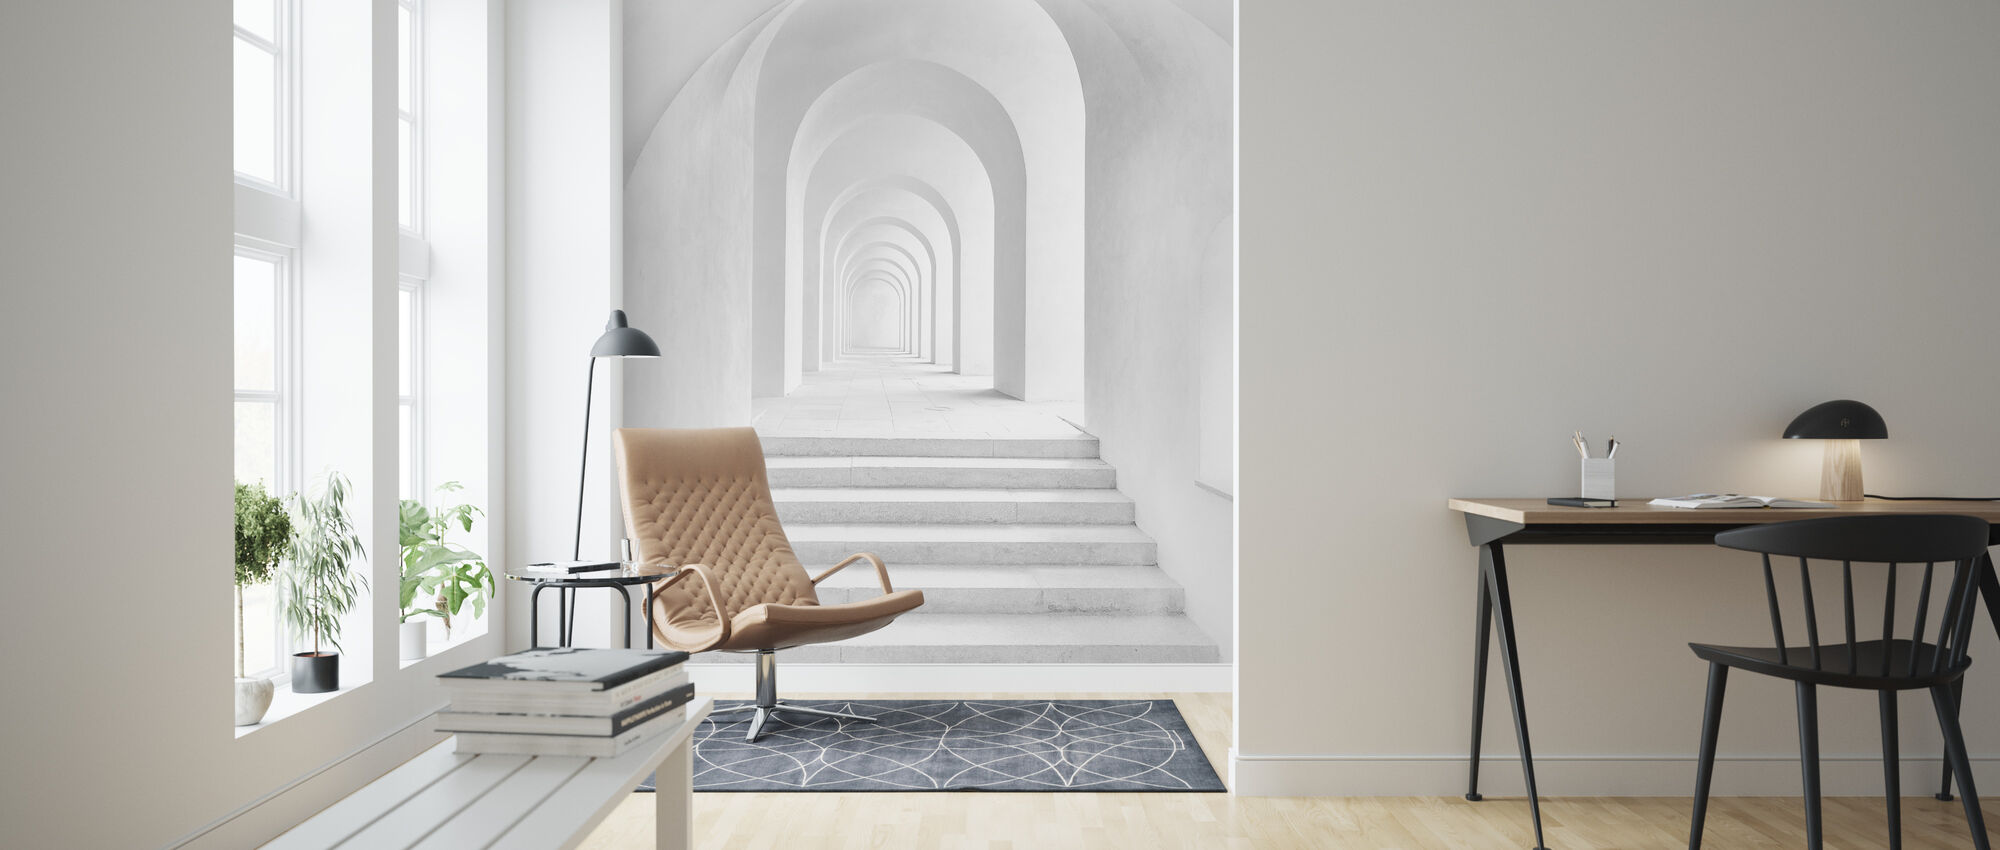 White Archway - Wallpaper - Living Room